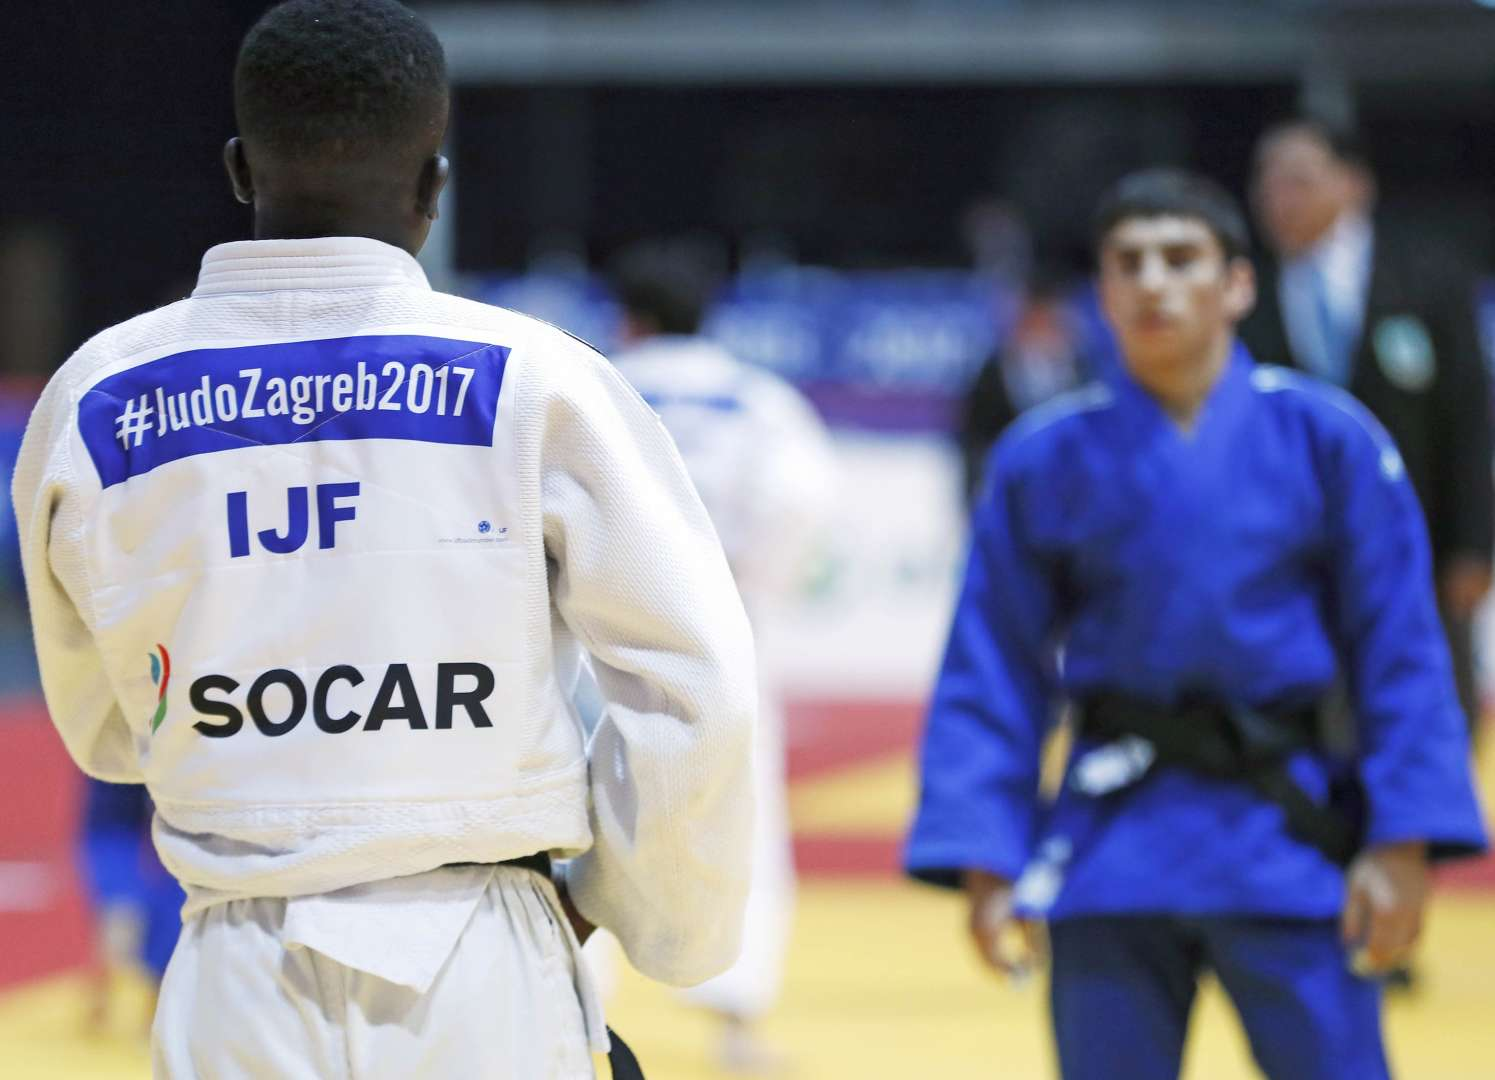 IJF ranked 9th out of 35 IF's on social media / IJF org